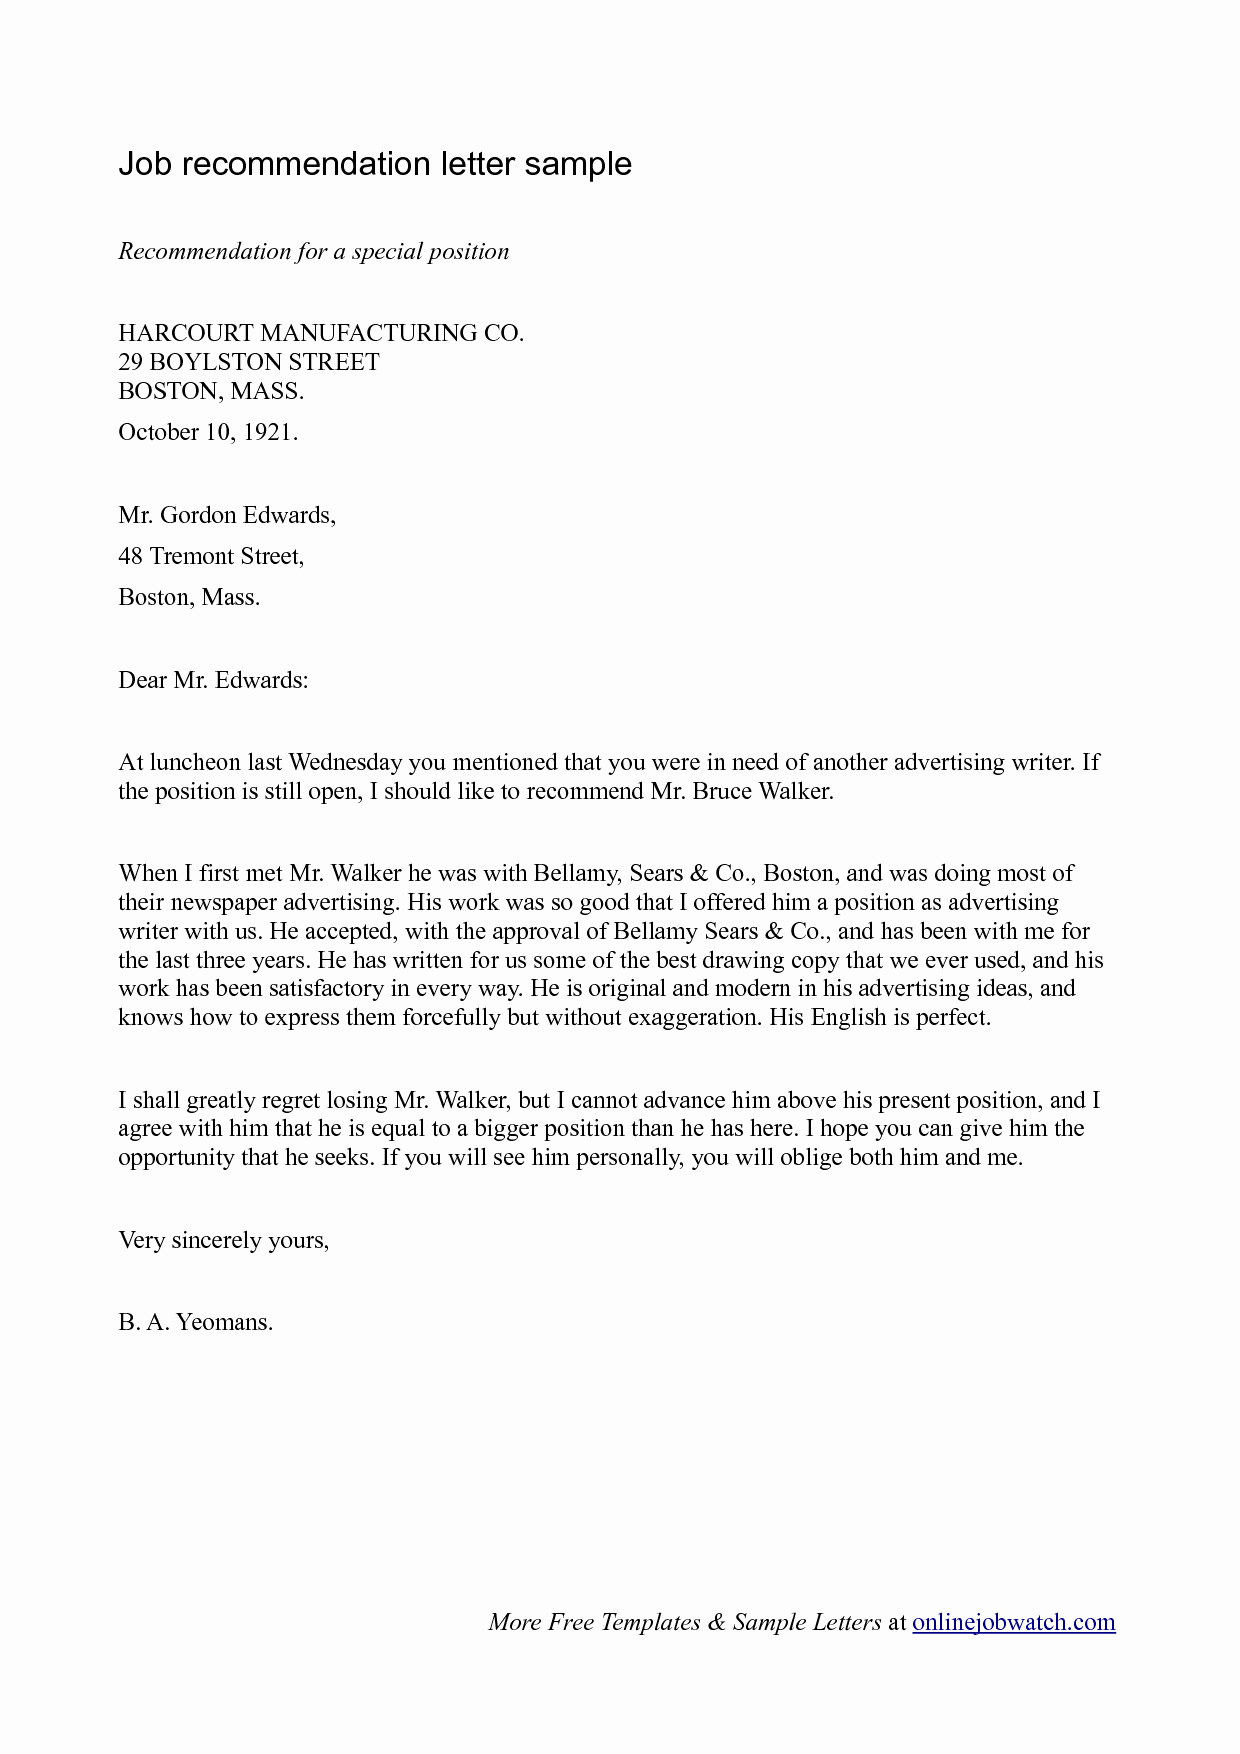 Examples Of Professional Reference Letters Fresh Simple Guide Professional Reference Letter with Samples